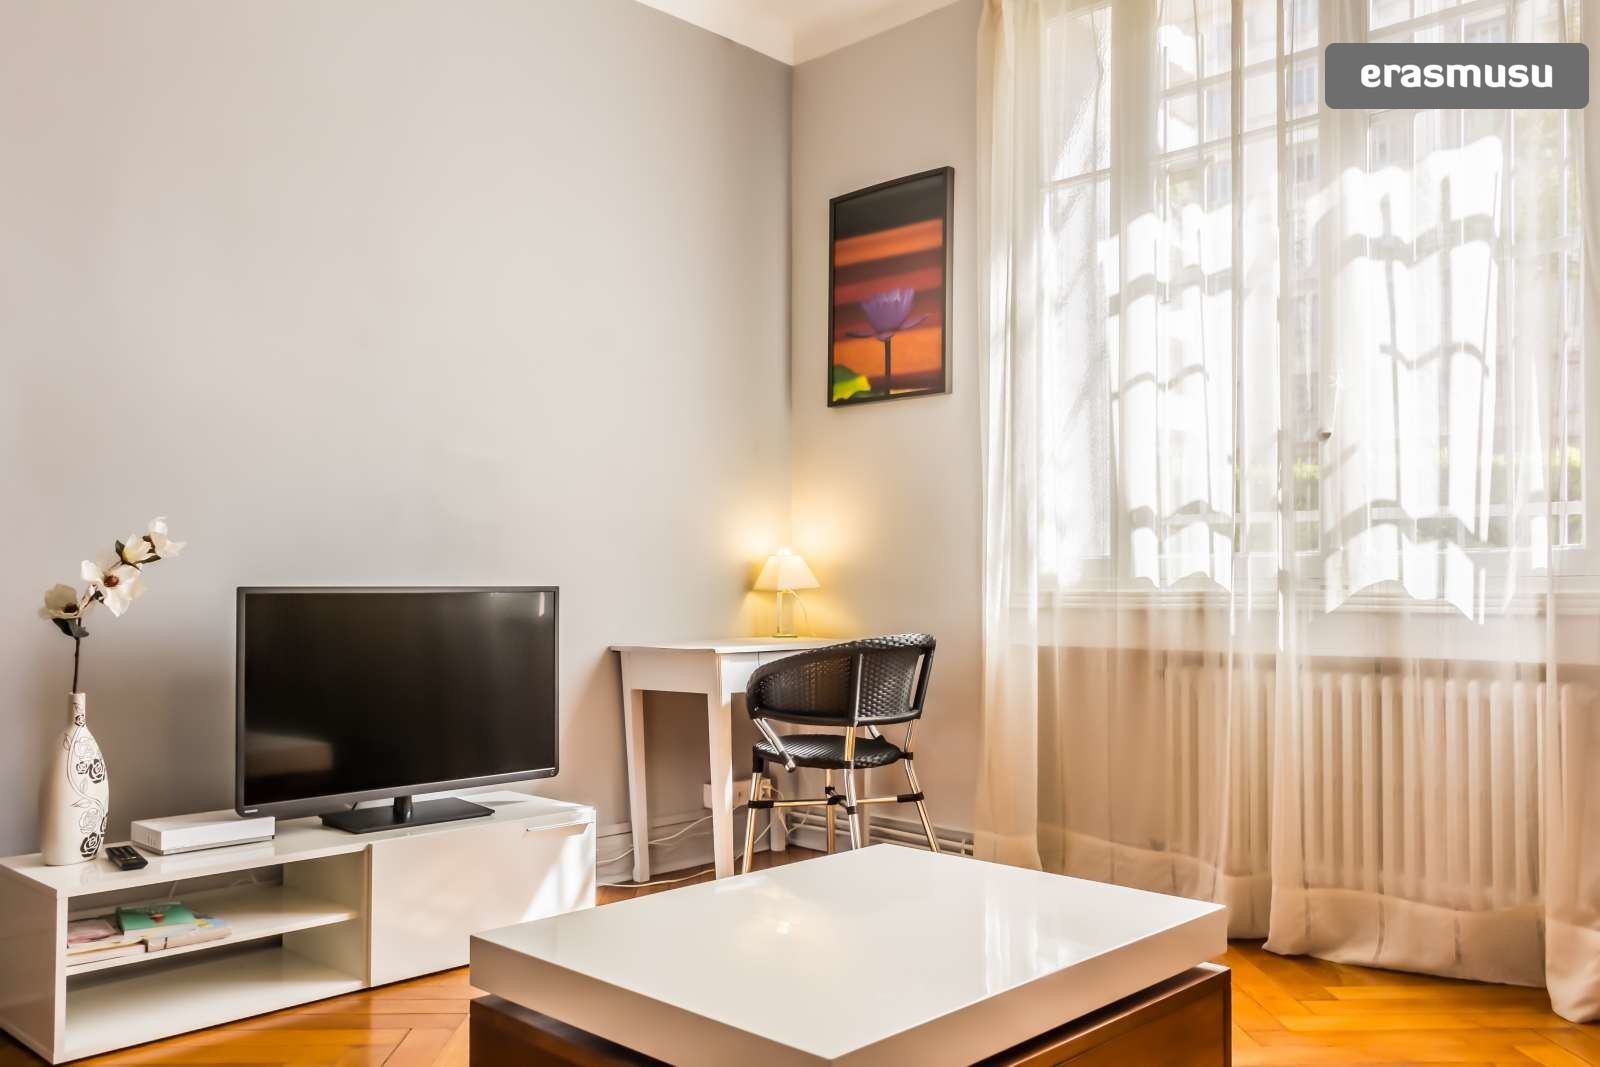 luxurious-fully-furnished-1-bedroom-apartment-rent-38c0c4b2e6a1f